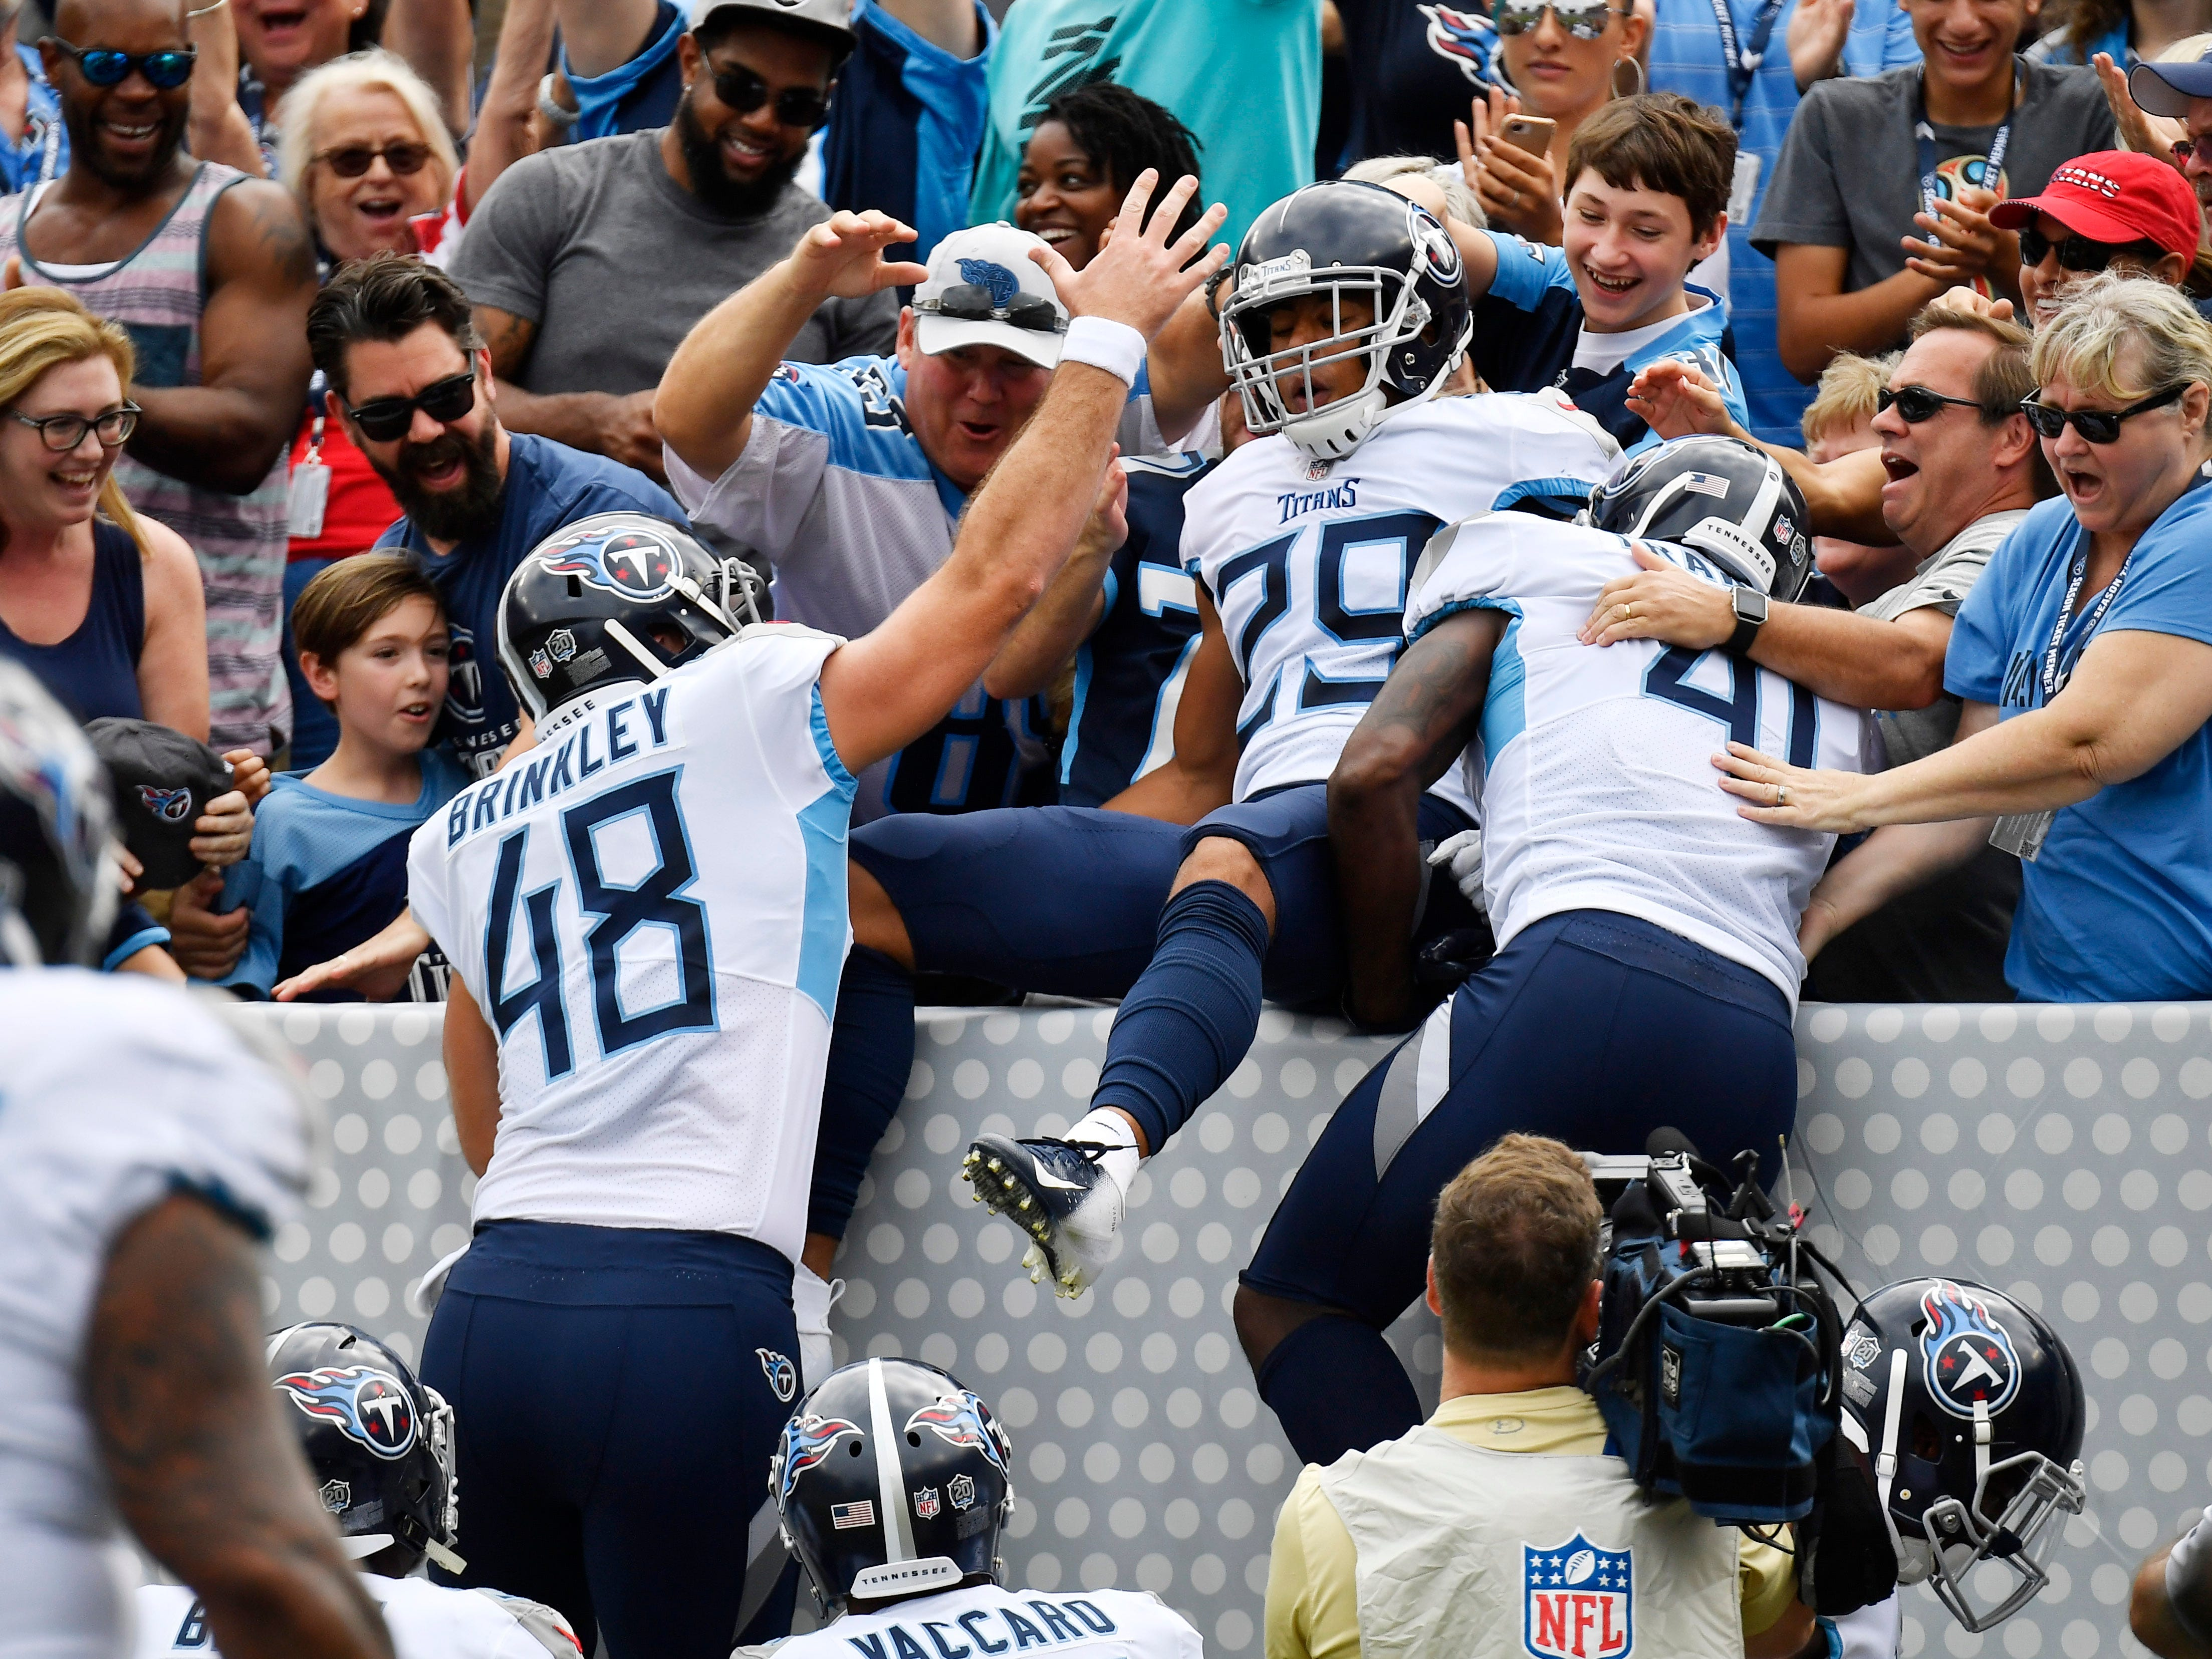 Titans cornerback Dane Cruikshank (29) celebrates his touchdown with long snapper Beau Brinkley (48), safety Brynden Trawick (41) and the fans at Nissan Stadium Sunday, Sept. 16, 2018, in Nashville, Tenn.